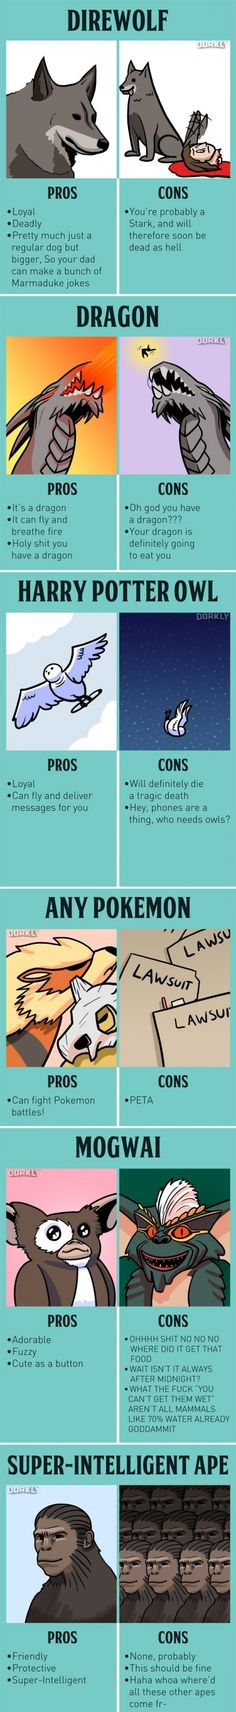 The Pros and Cons of Fictional Pets